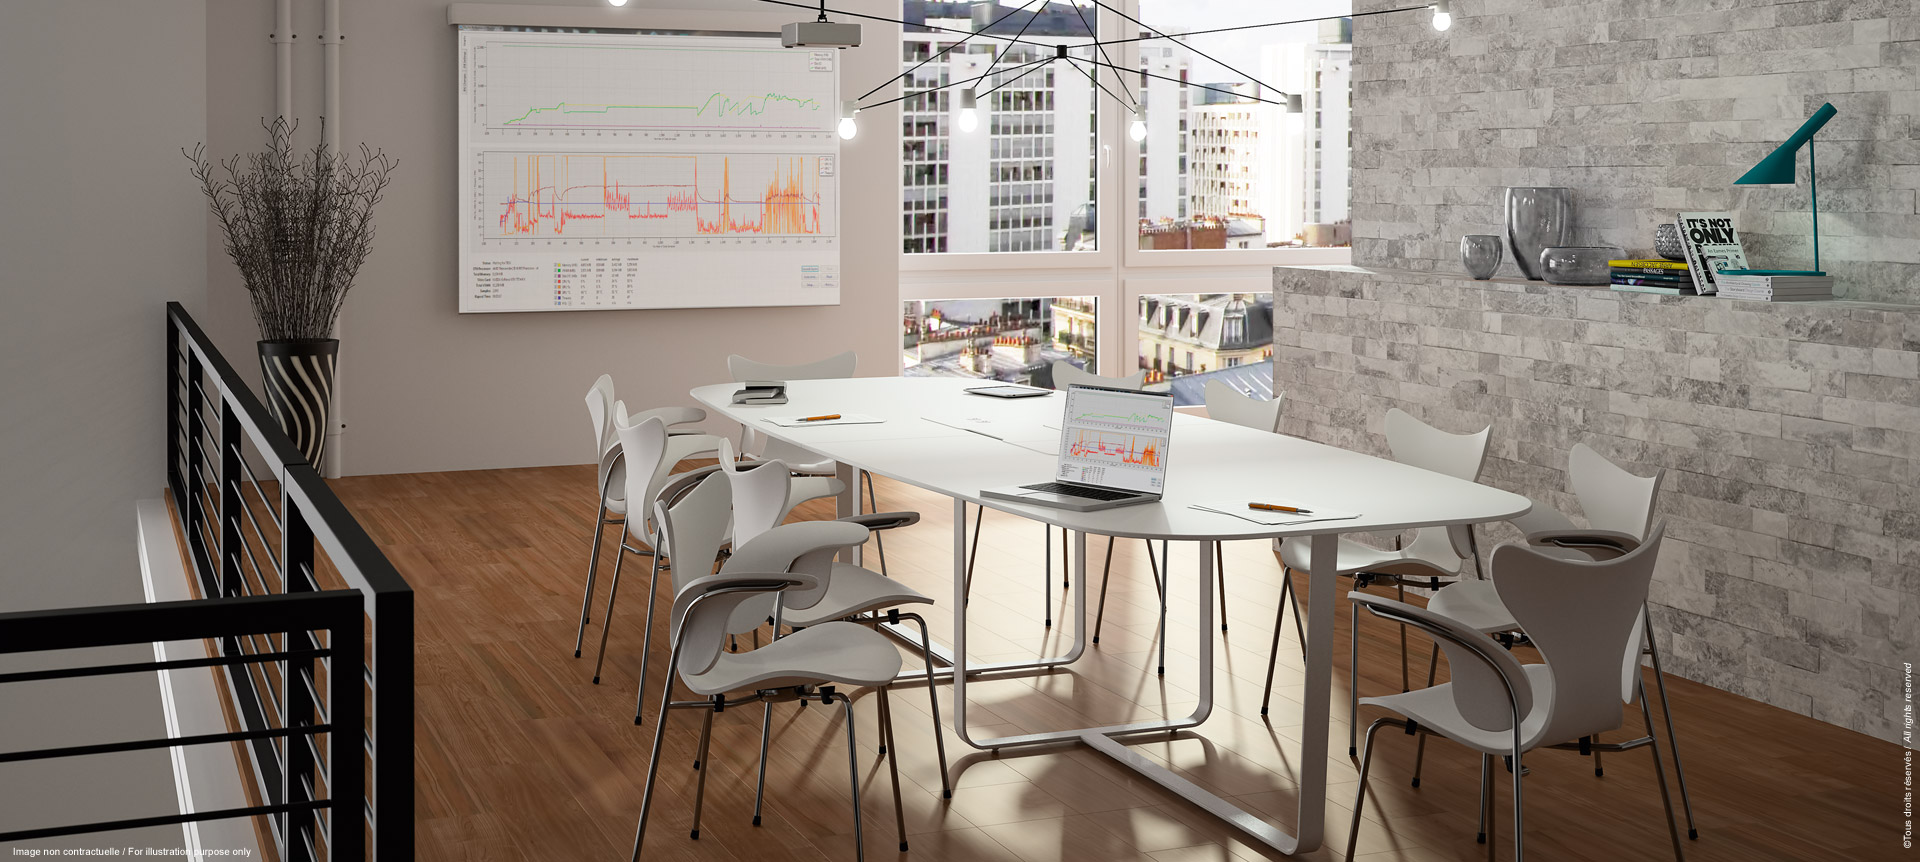 WEMEET MEETING - Conference table with plug access